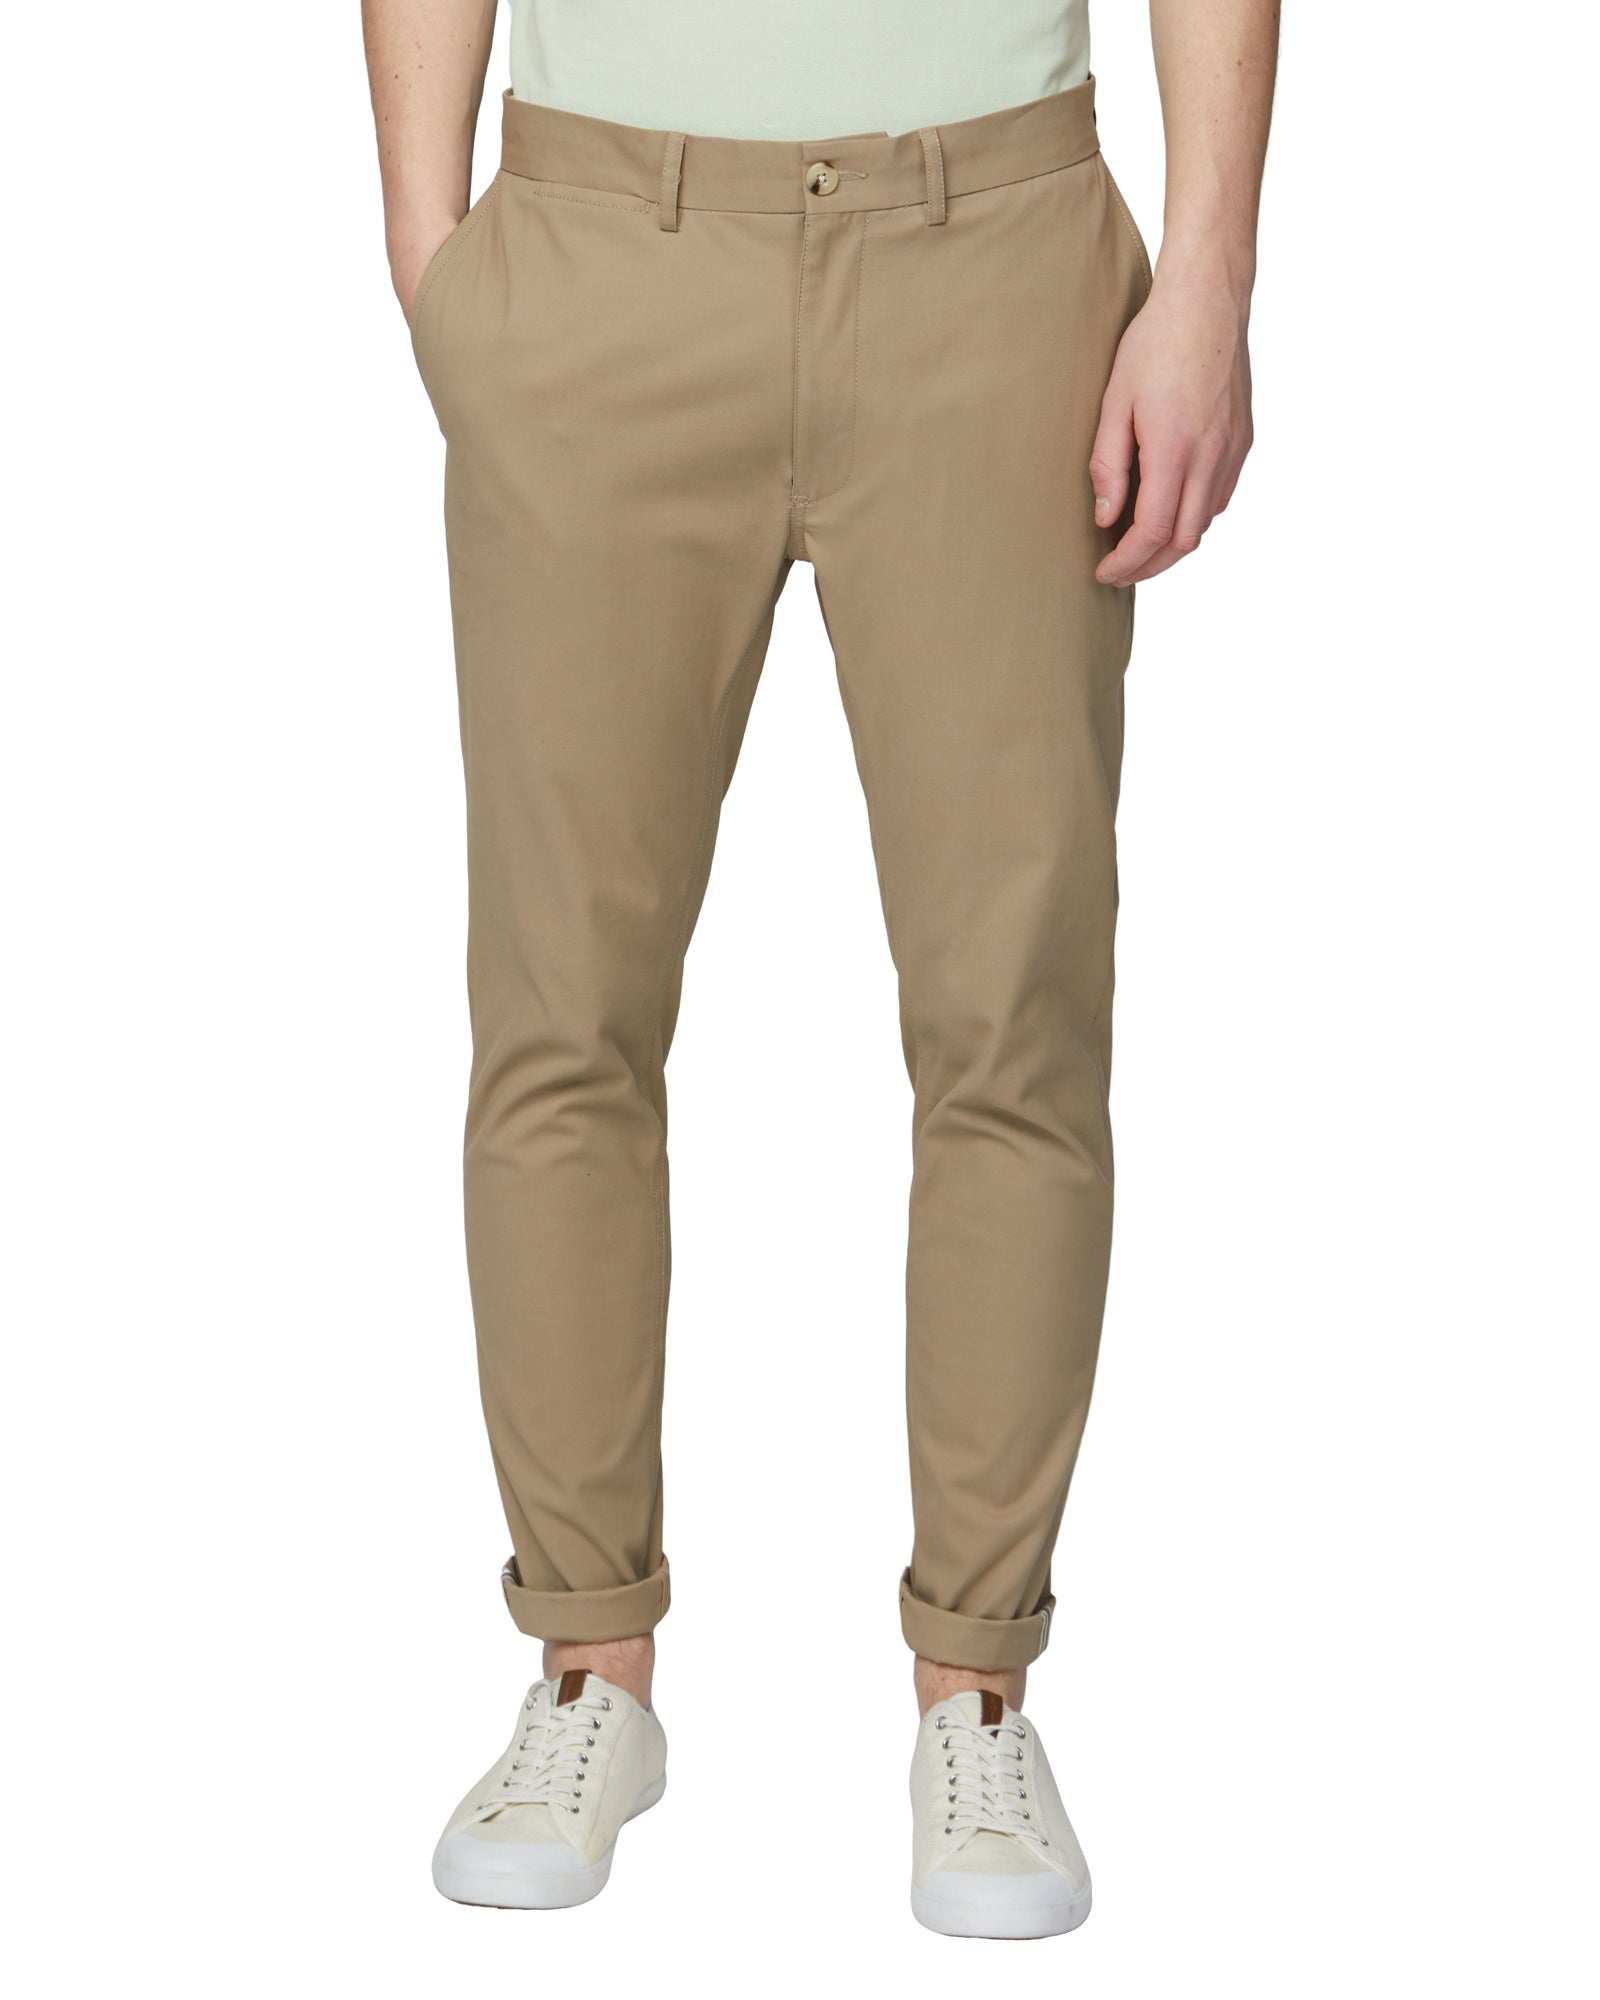 Signature Slim Stretch Chino Pant - Stone